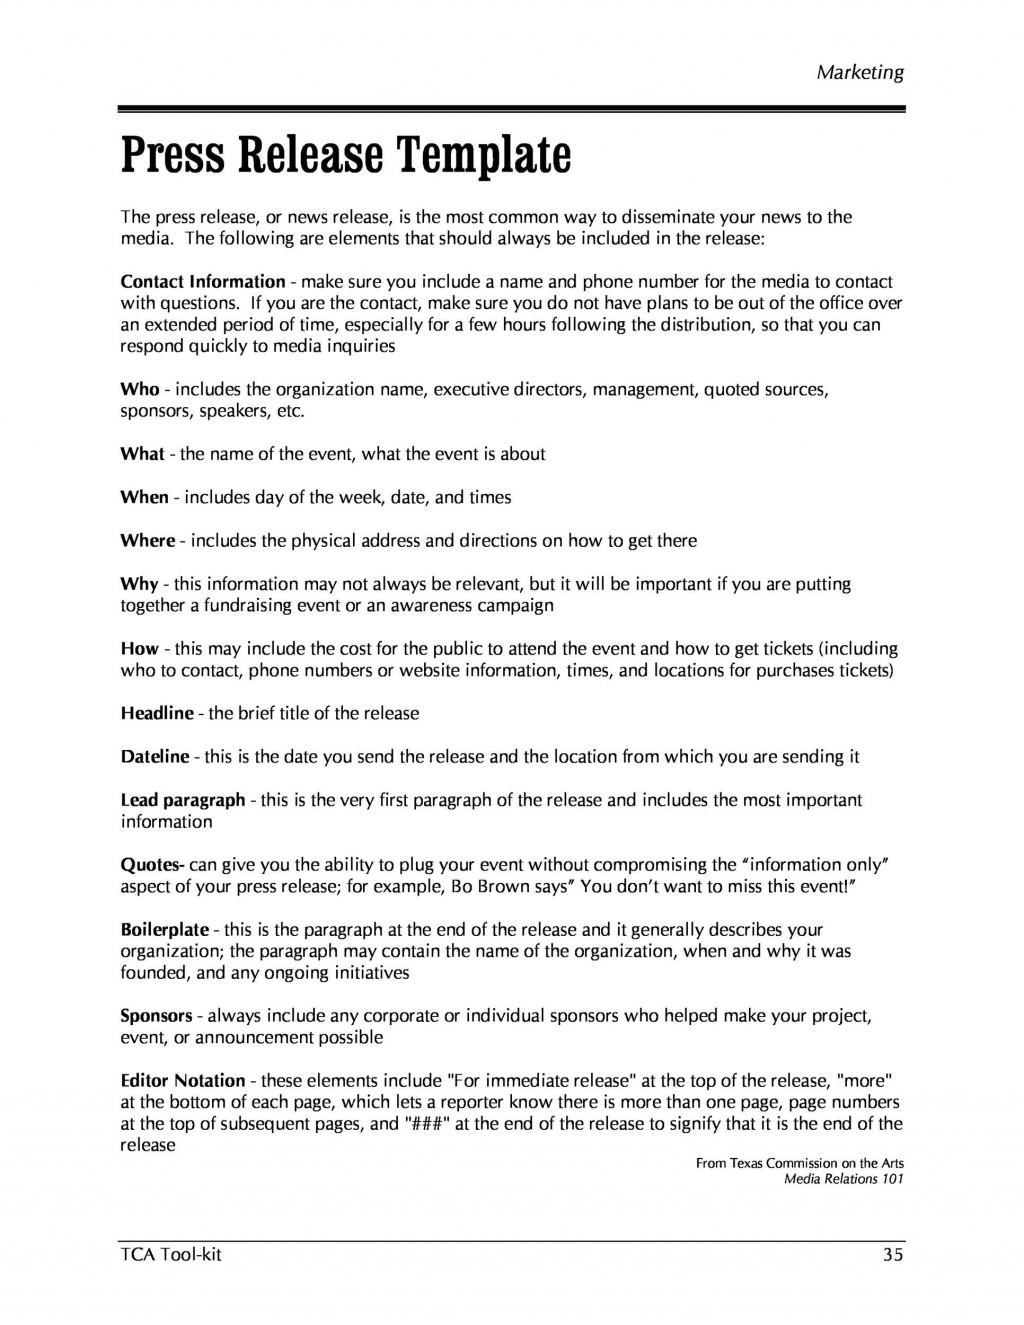 008 Fascinating Pres Release Template Doc Sample  Format ExampleLarge